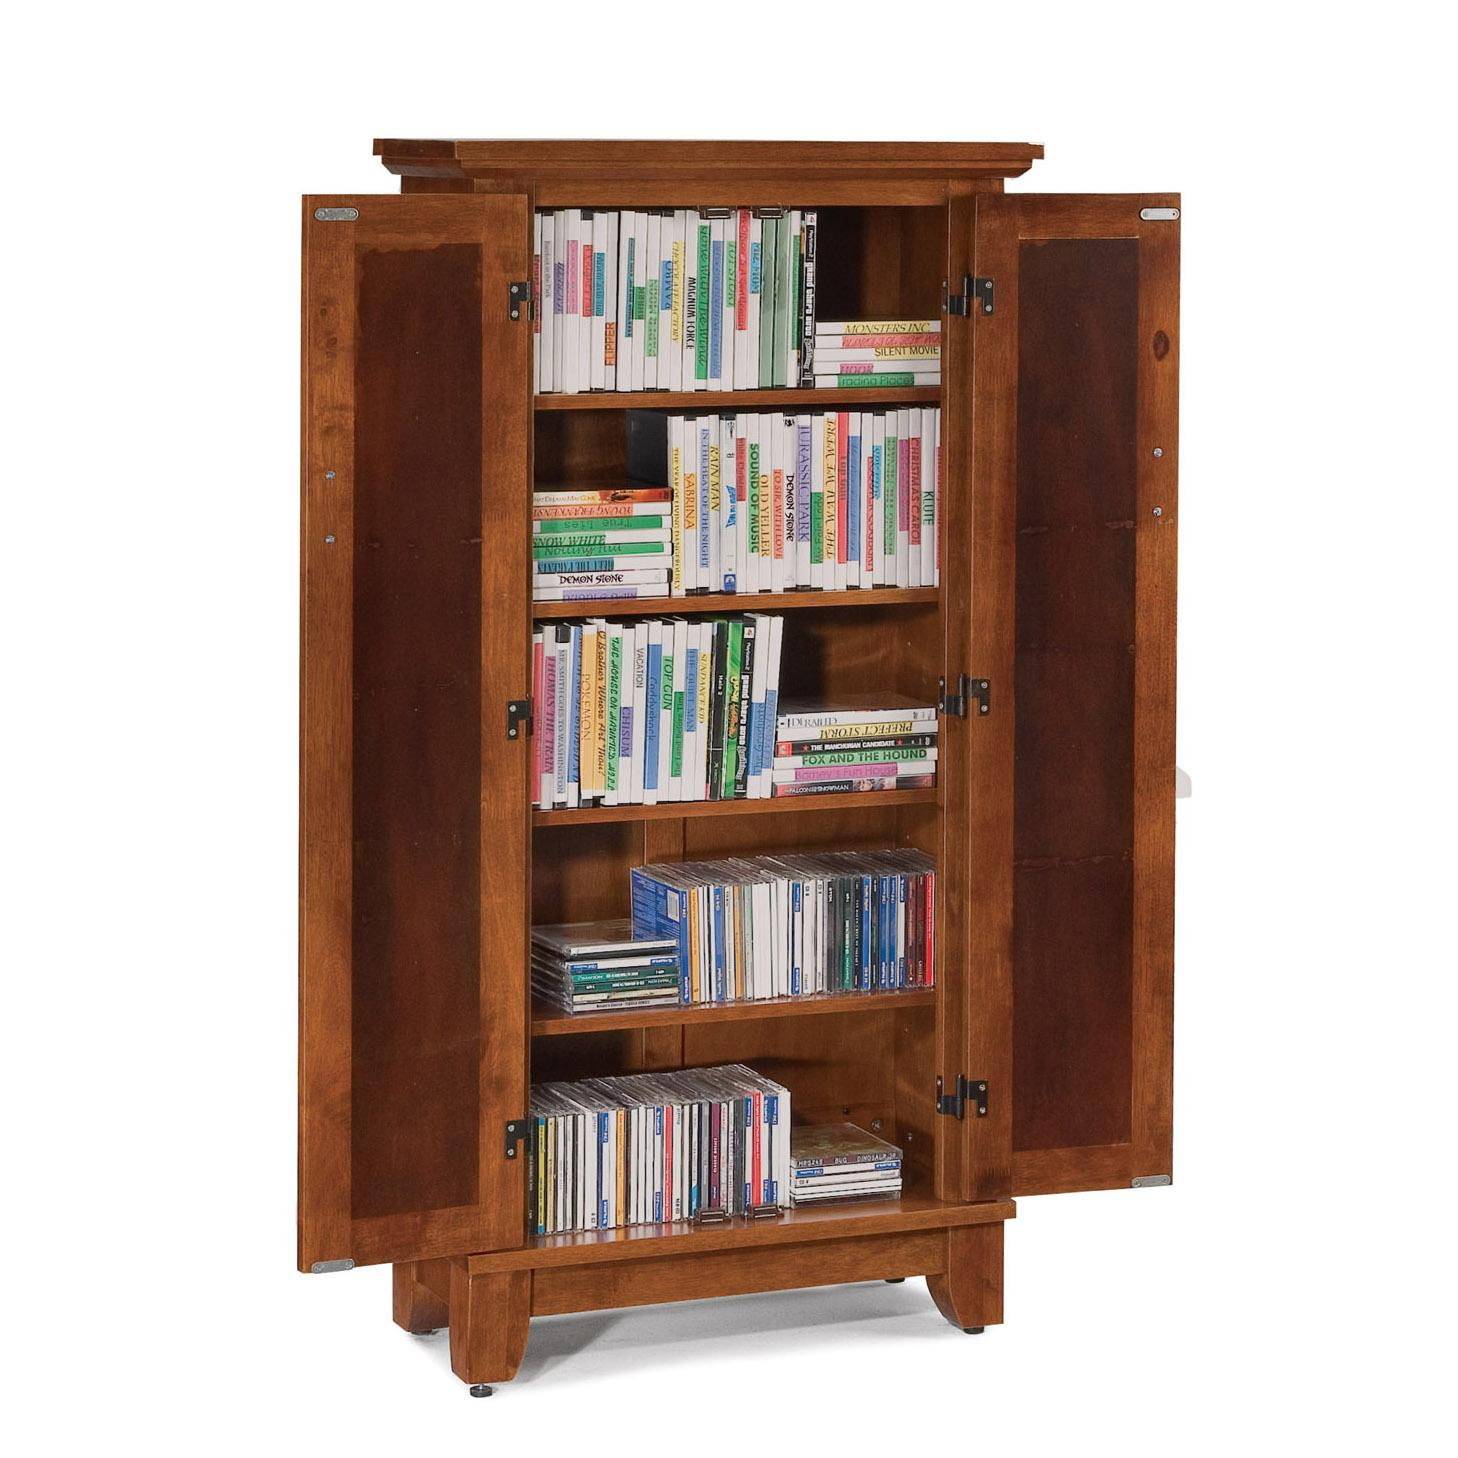 Home Styles Arts and Crafts 5 Shelf Closed Bookcase | AHFA ...